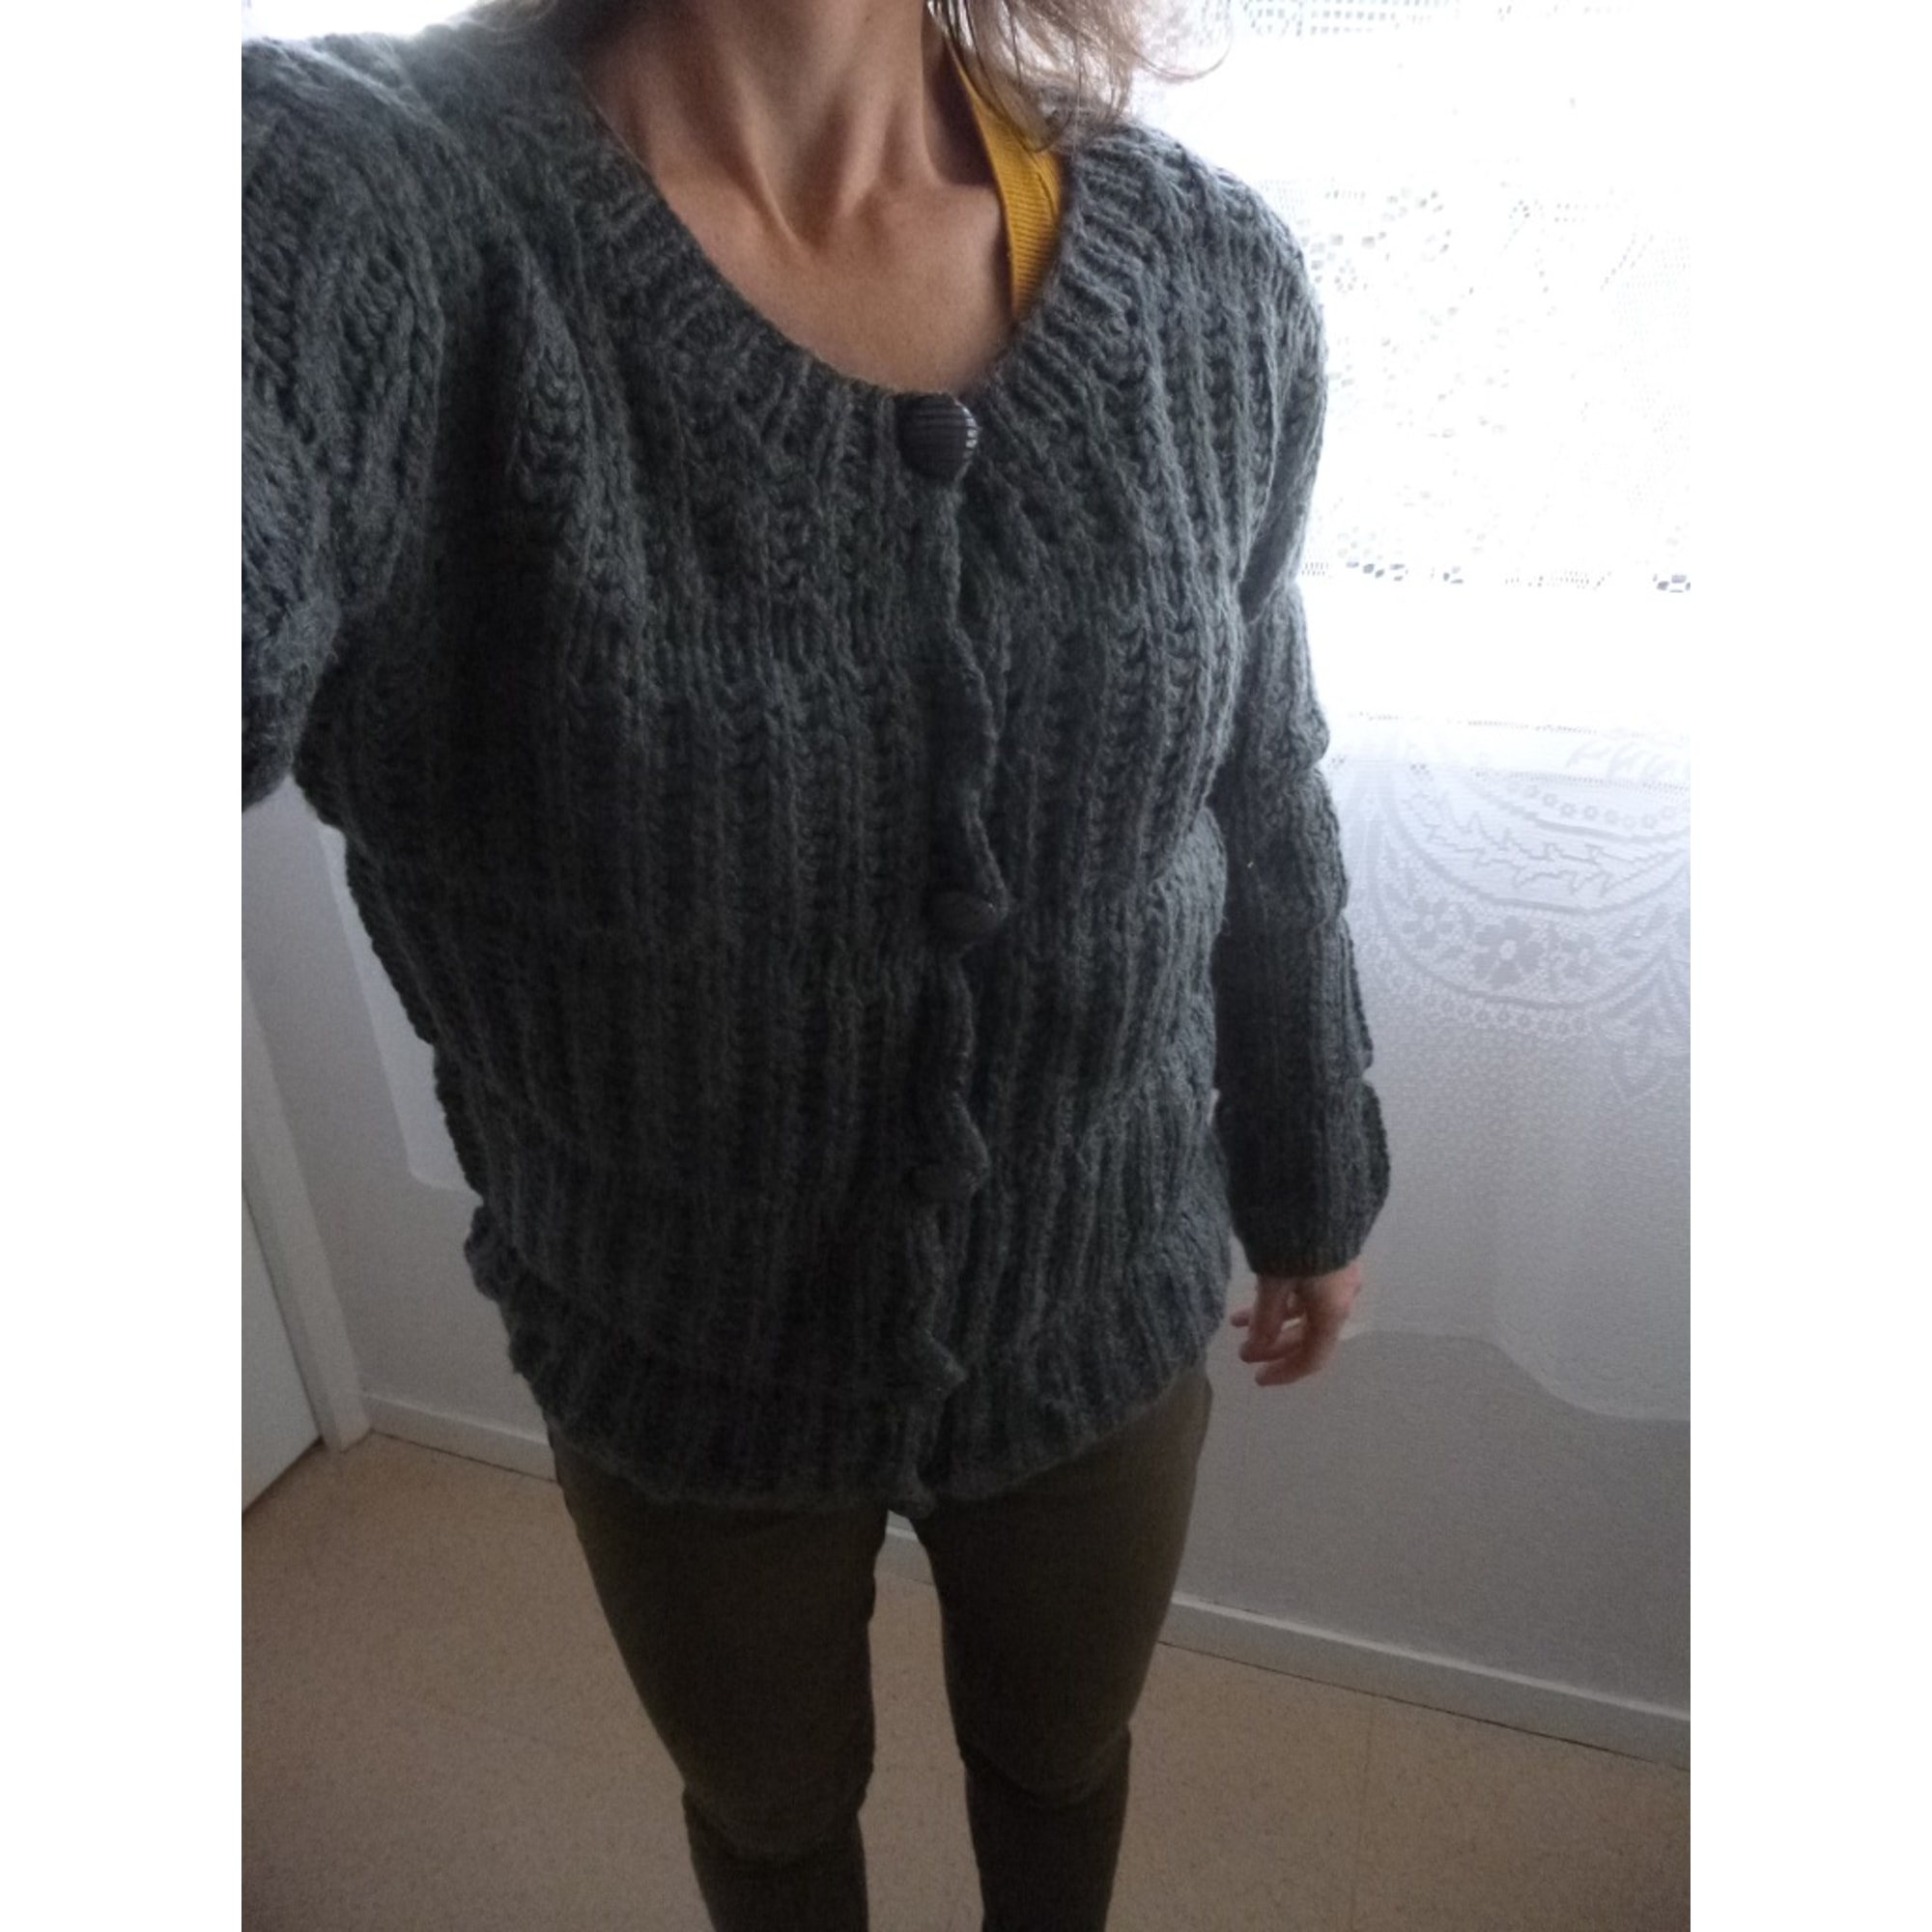 Gilet, cardigan GEORGES RECH Gris, anthracite